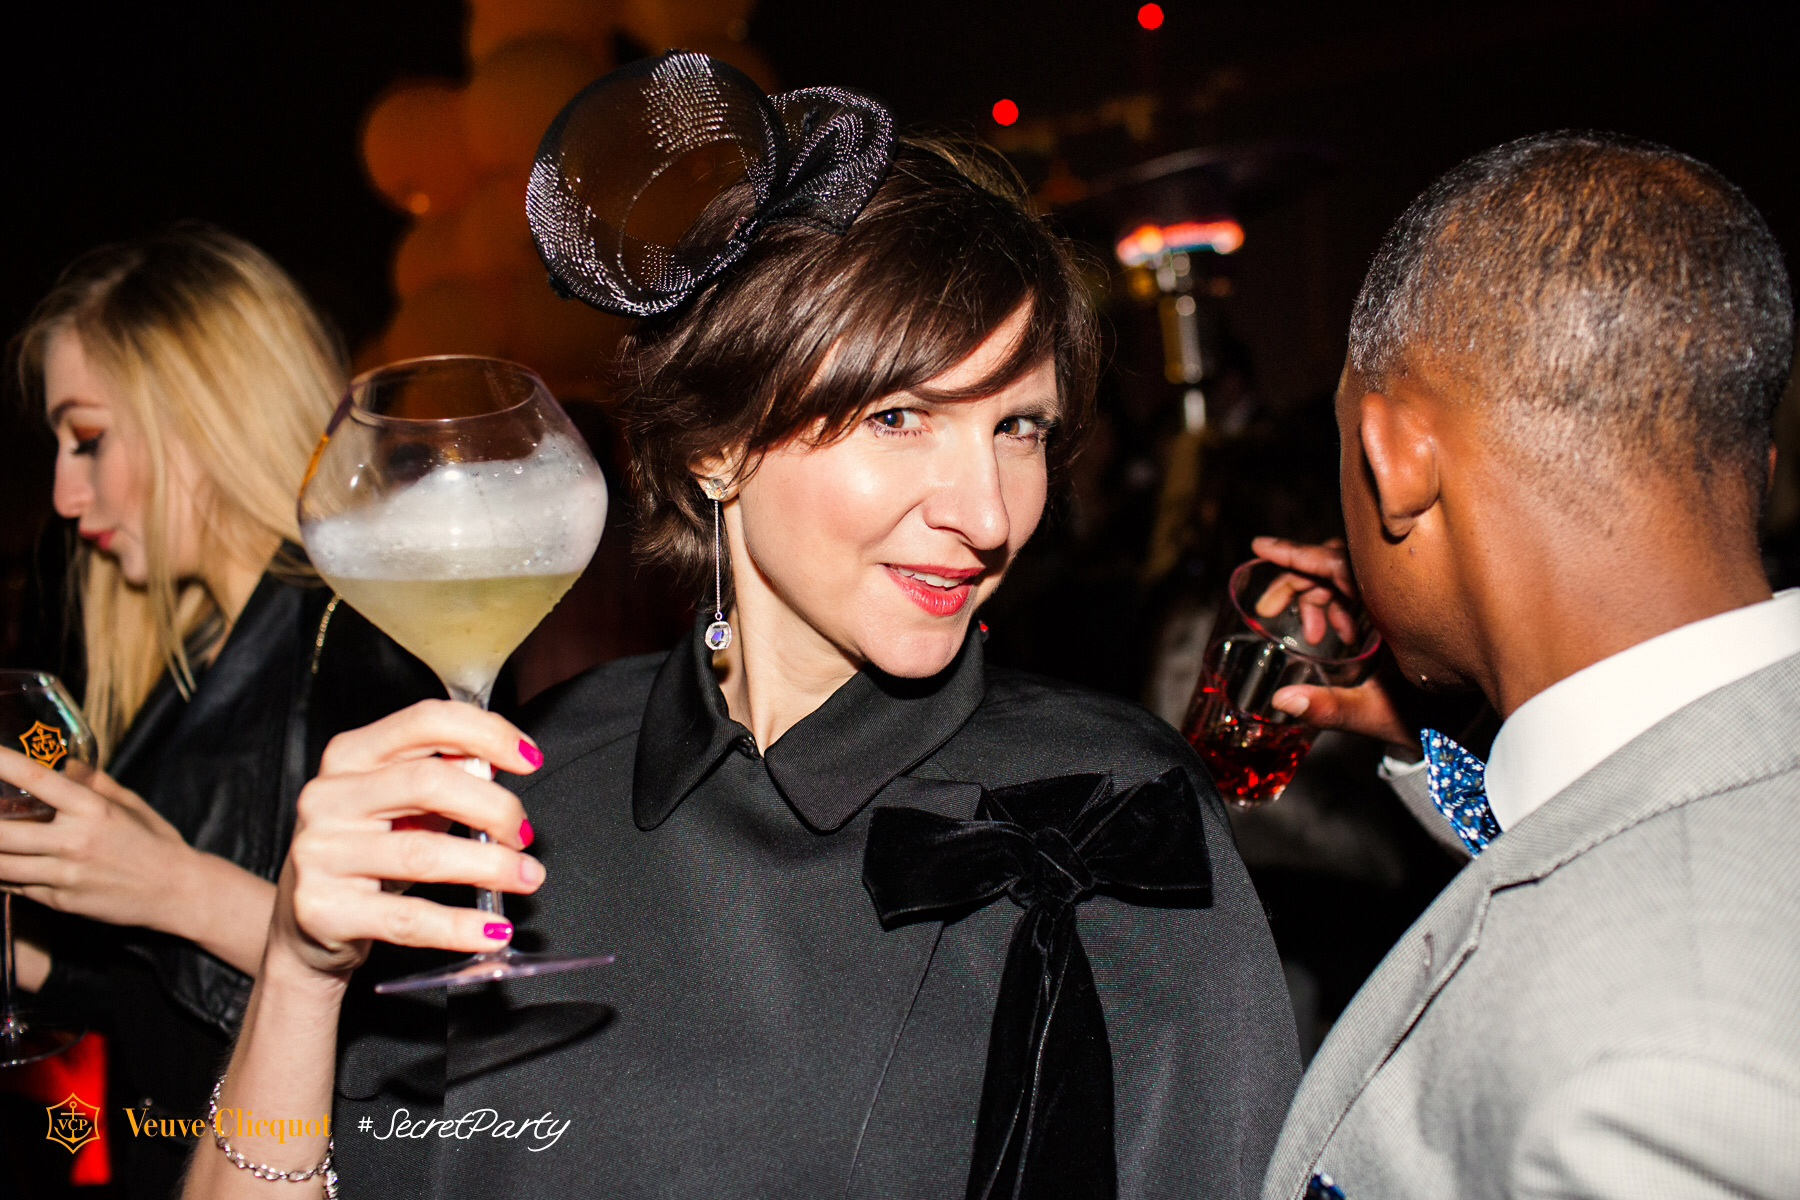 Veuve Clicquot Secret Party